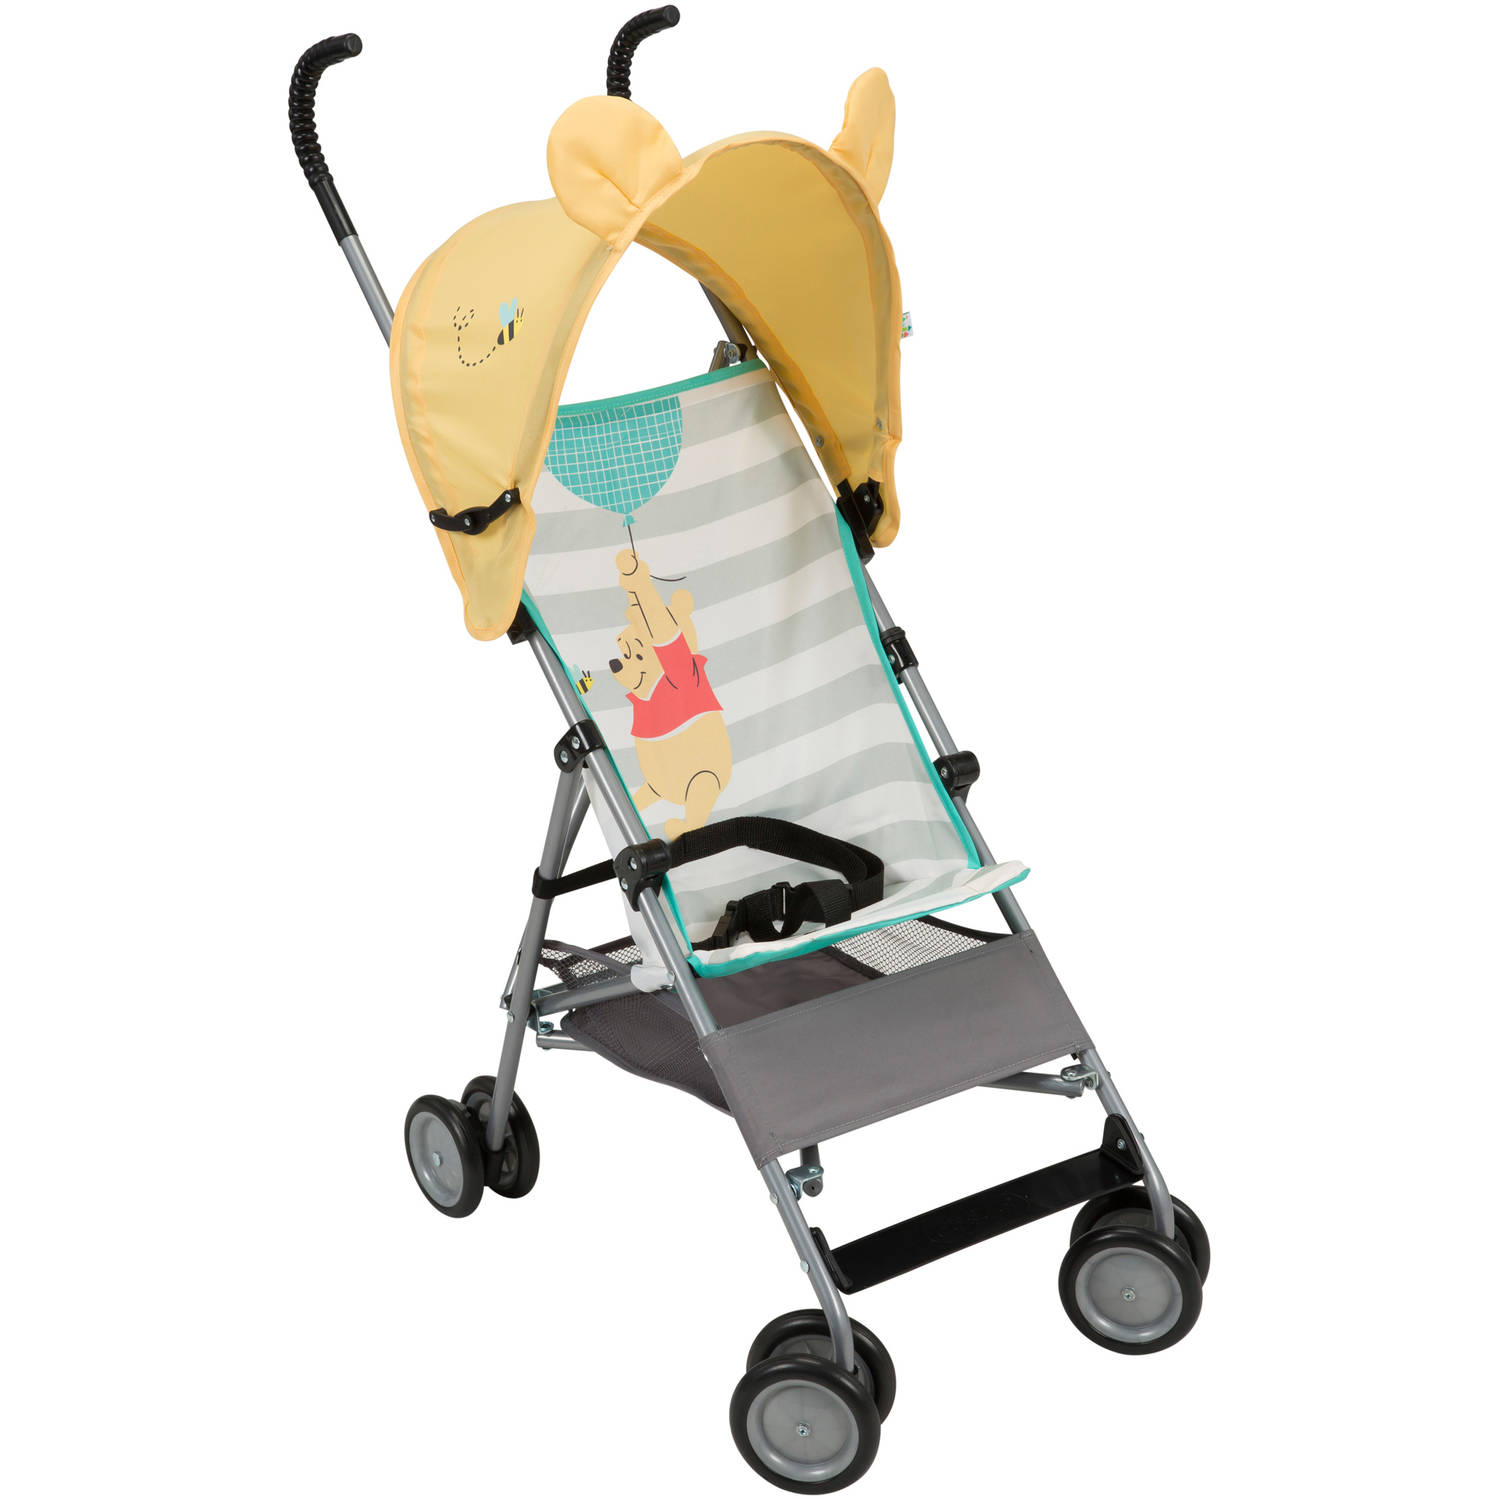 Disney Baby, Winnie the Pooh, Umbrella Stroller with Basket